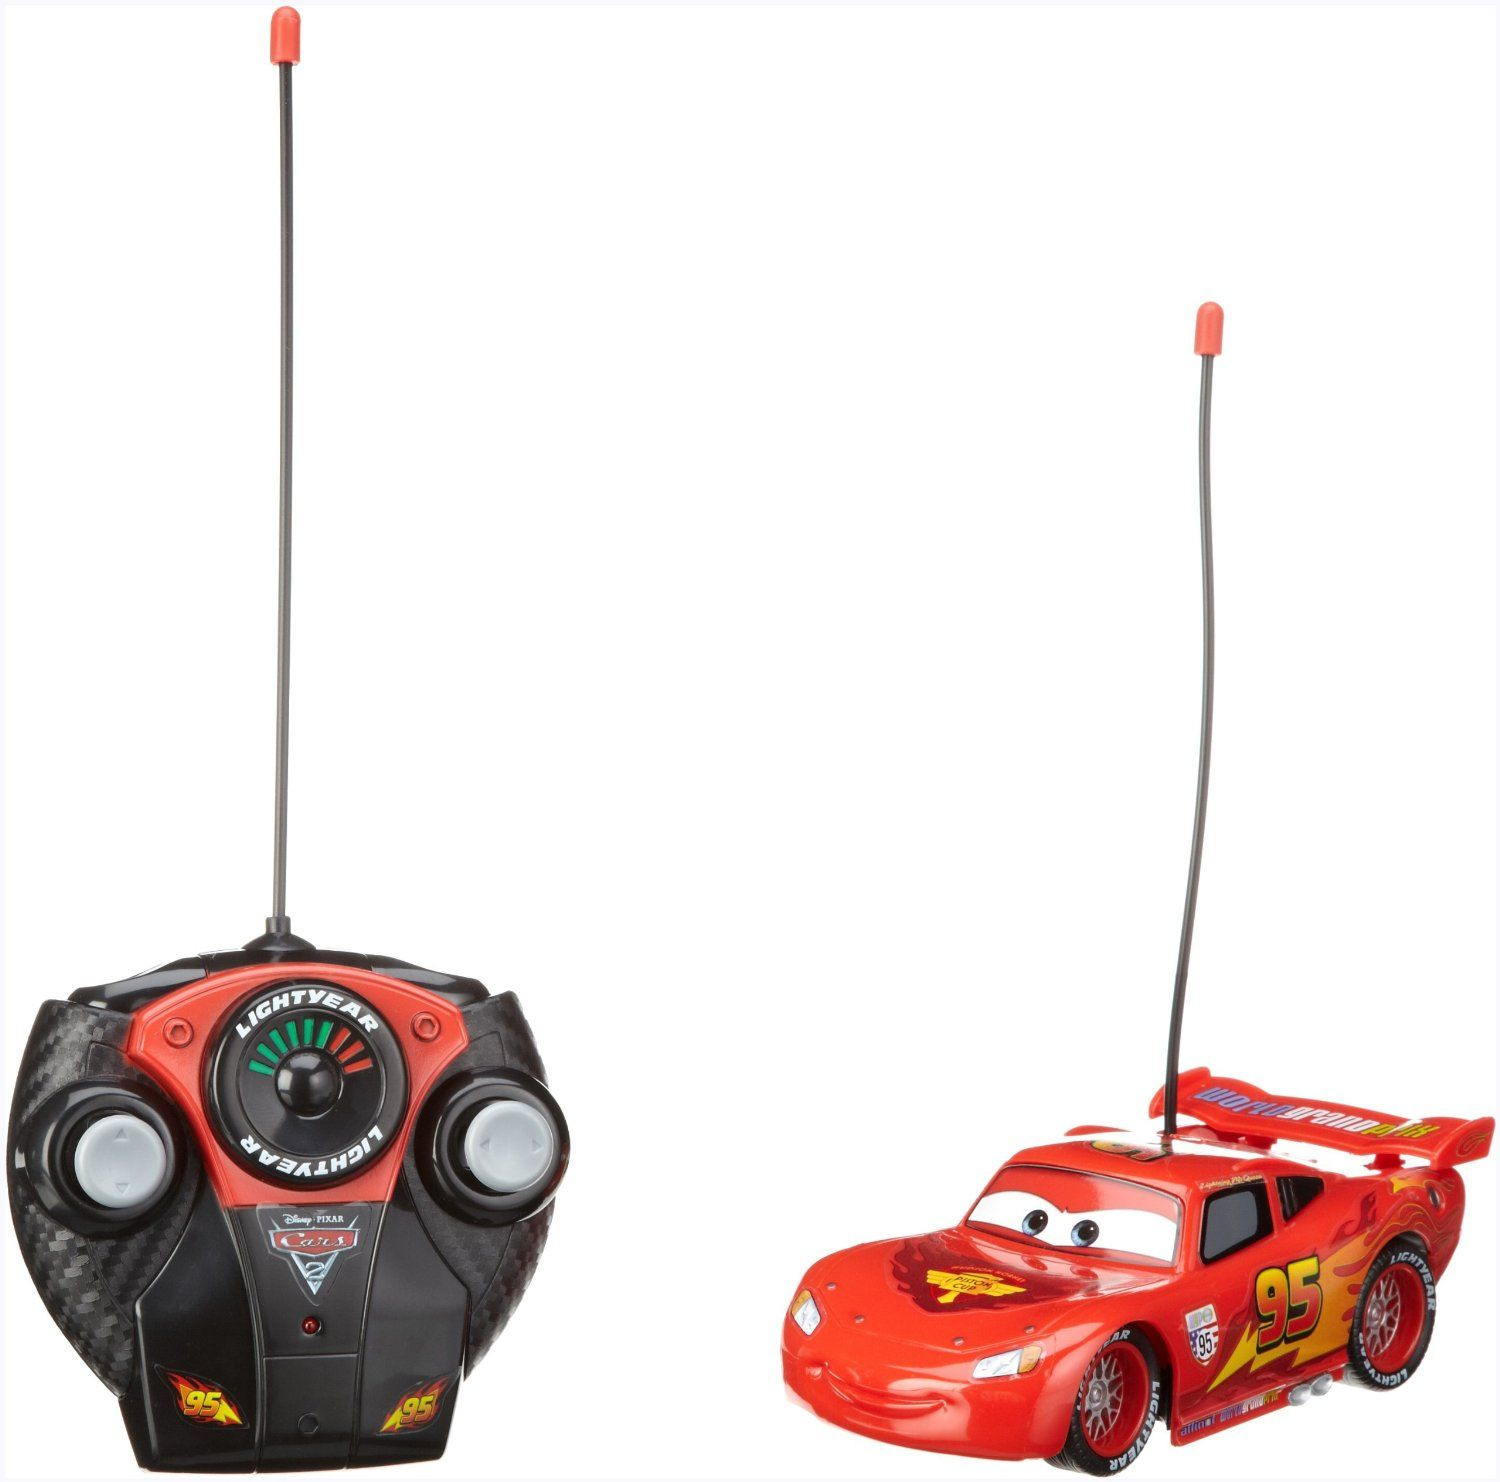 voiture radiocommand e flash mcqueen cars dickie toys avis. Black Bedroom Furniture Sets. Home Design Ideas